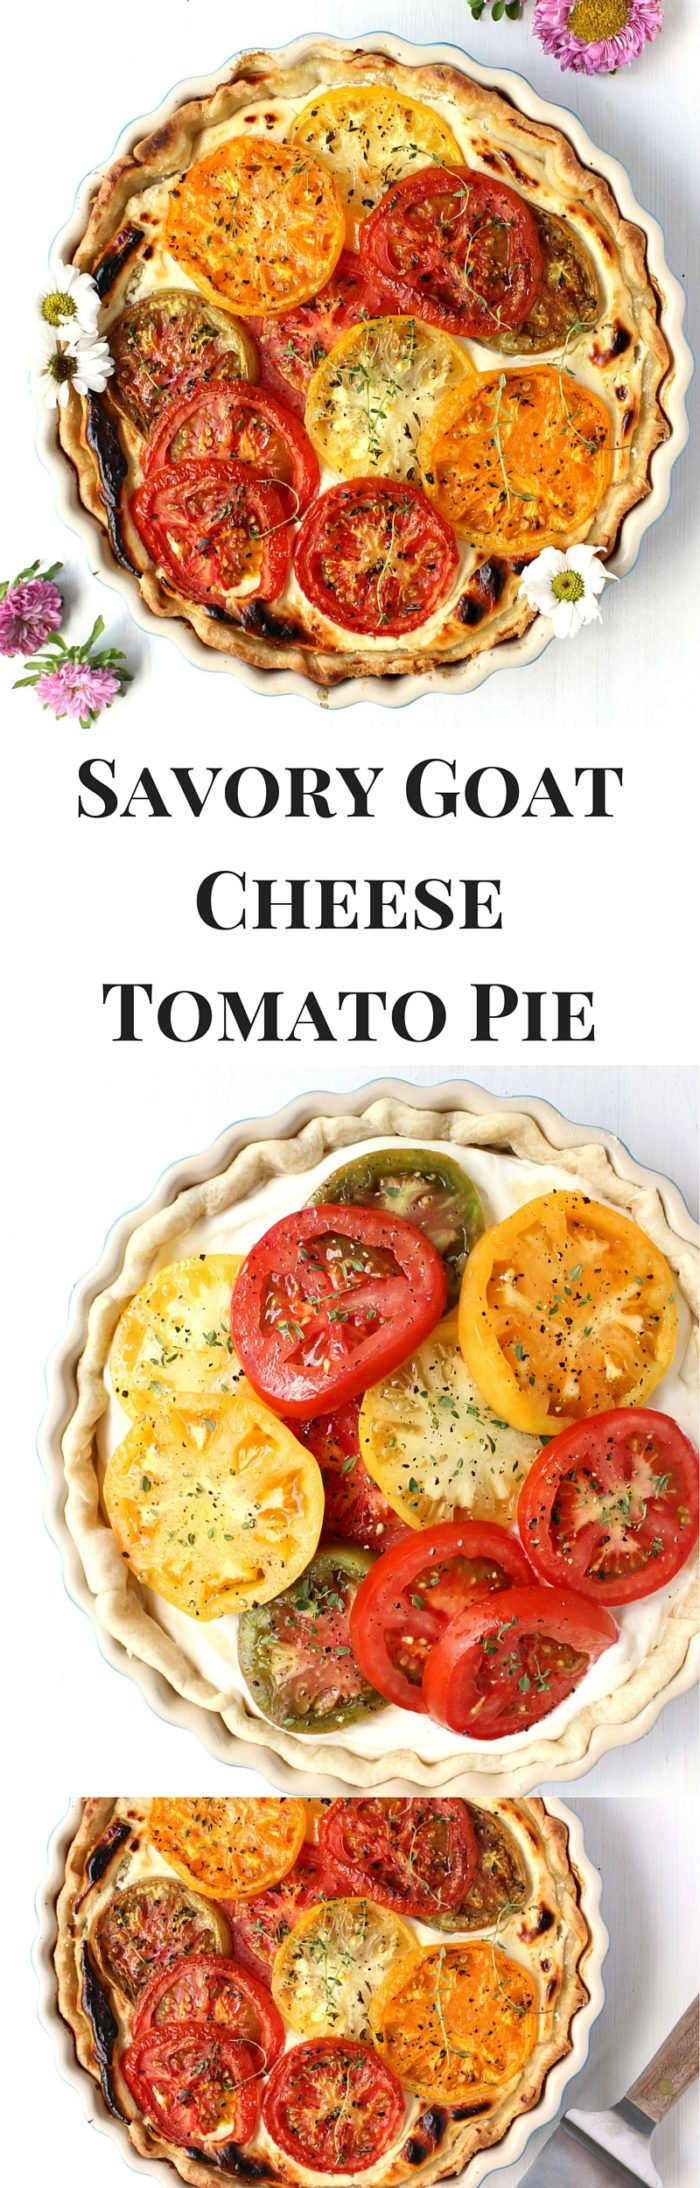 Savory Goat Cheese Tomato Pie